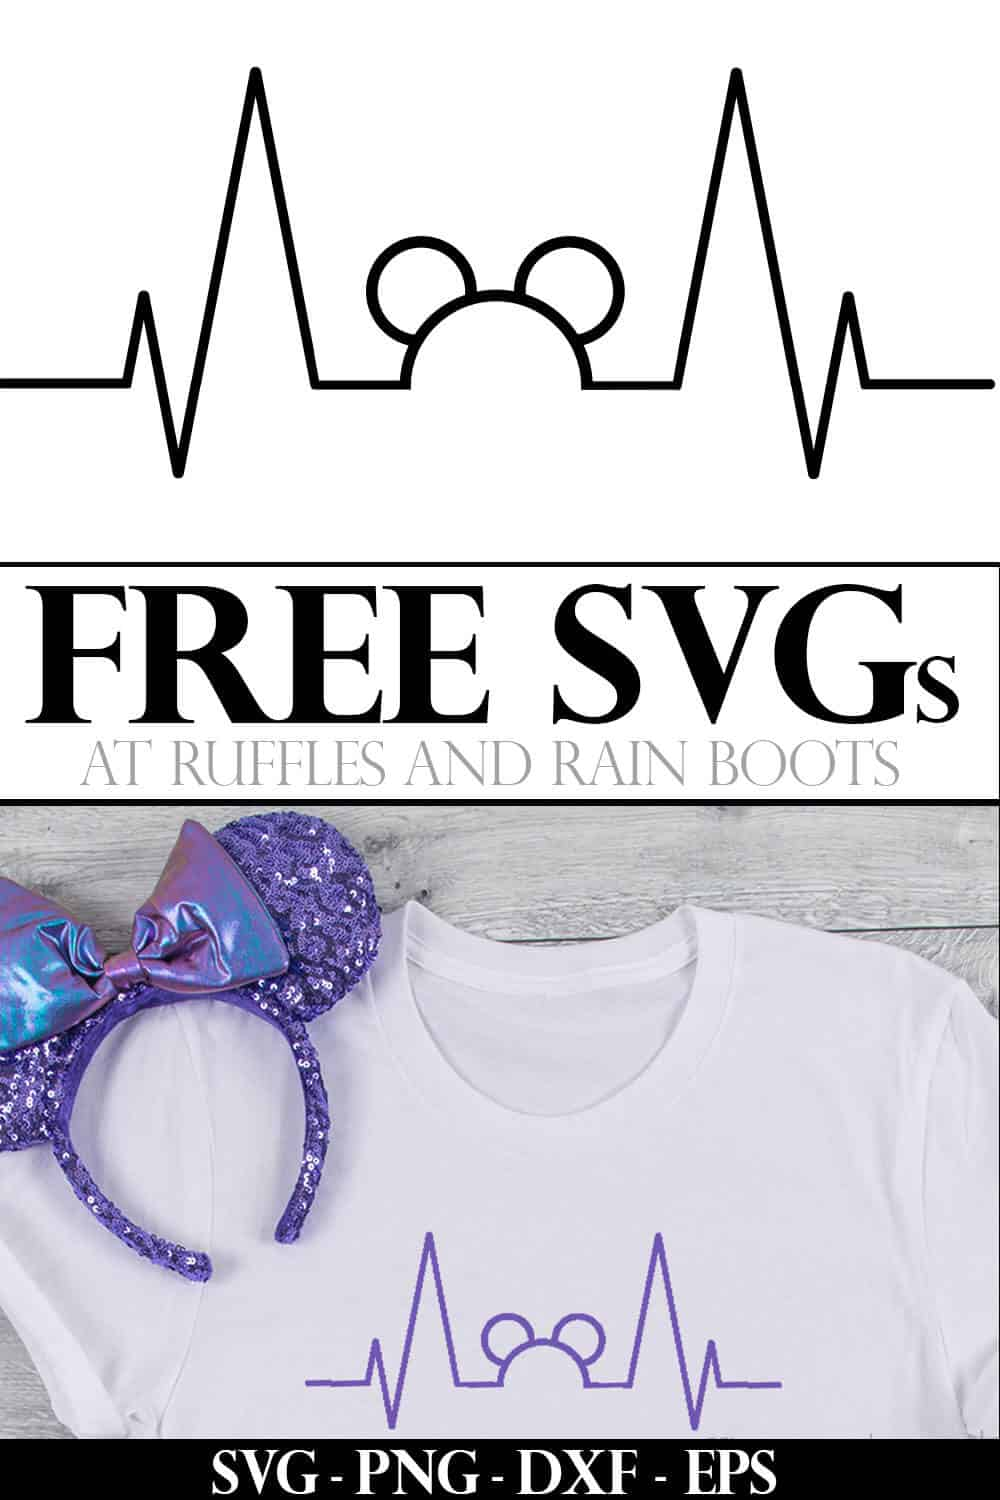 Disney Mickey heartbeat SVG in purple on white shirt with purple passion Minnie ears on wood background with text which reads free svgs at ruffles and rain boots